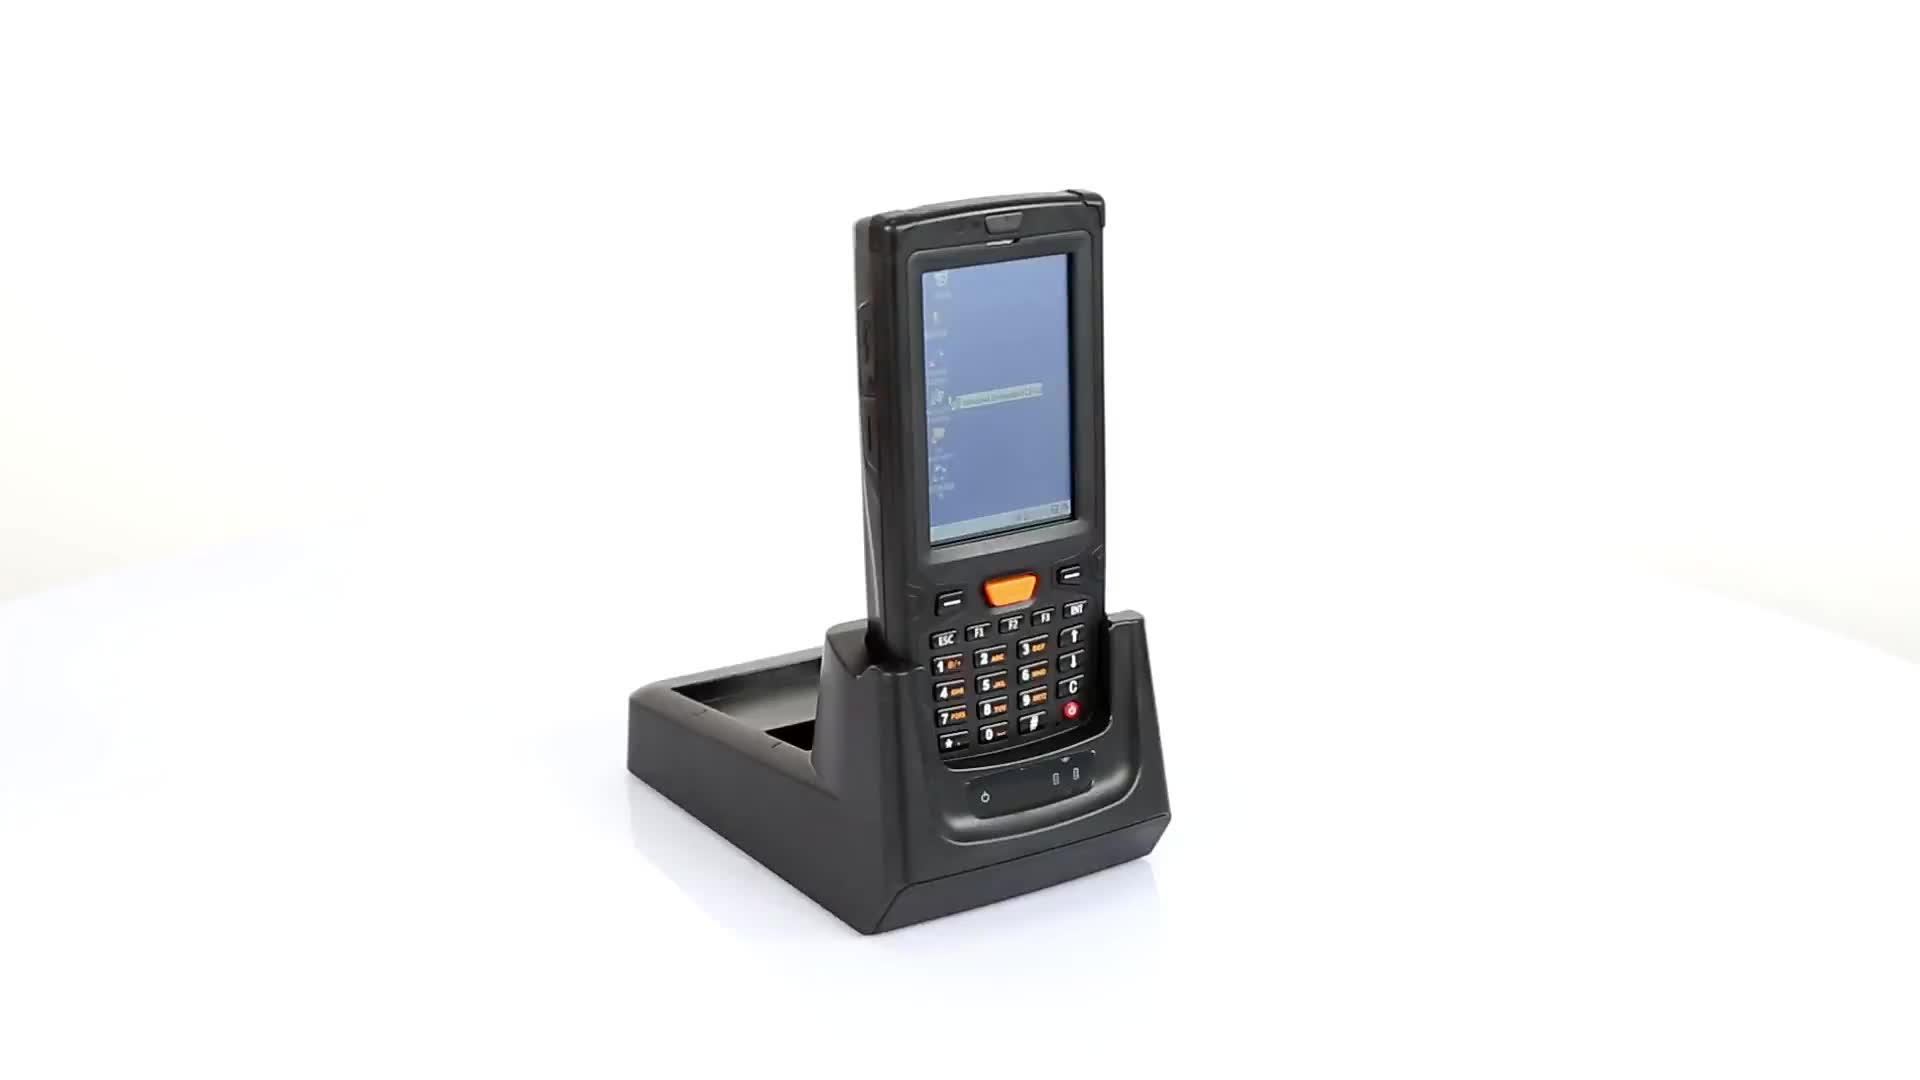 Win CE 1D 2D Barcode Scanner PDA Terminal 3G NFC RFID Bar Code Reader Handheld Rugged With GPS GPRS  Camera